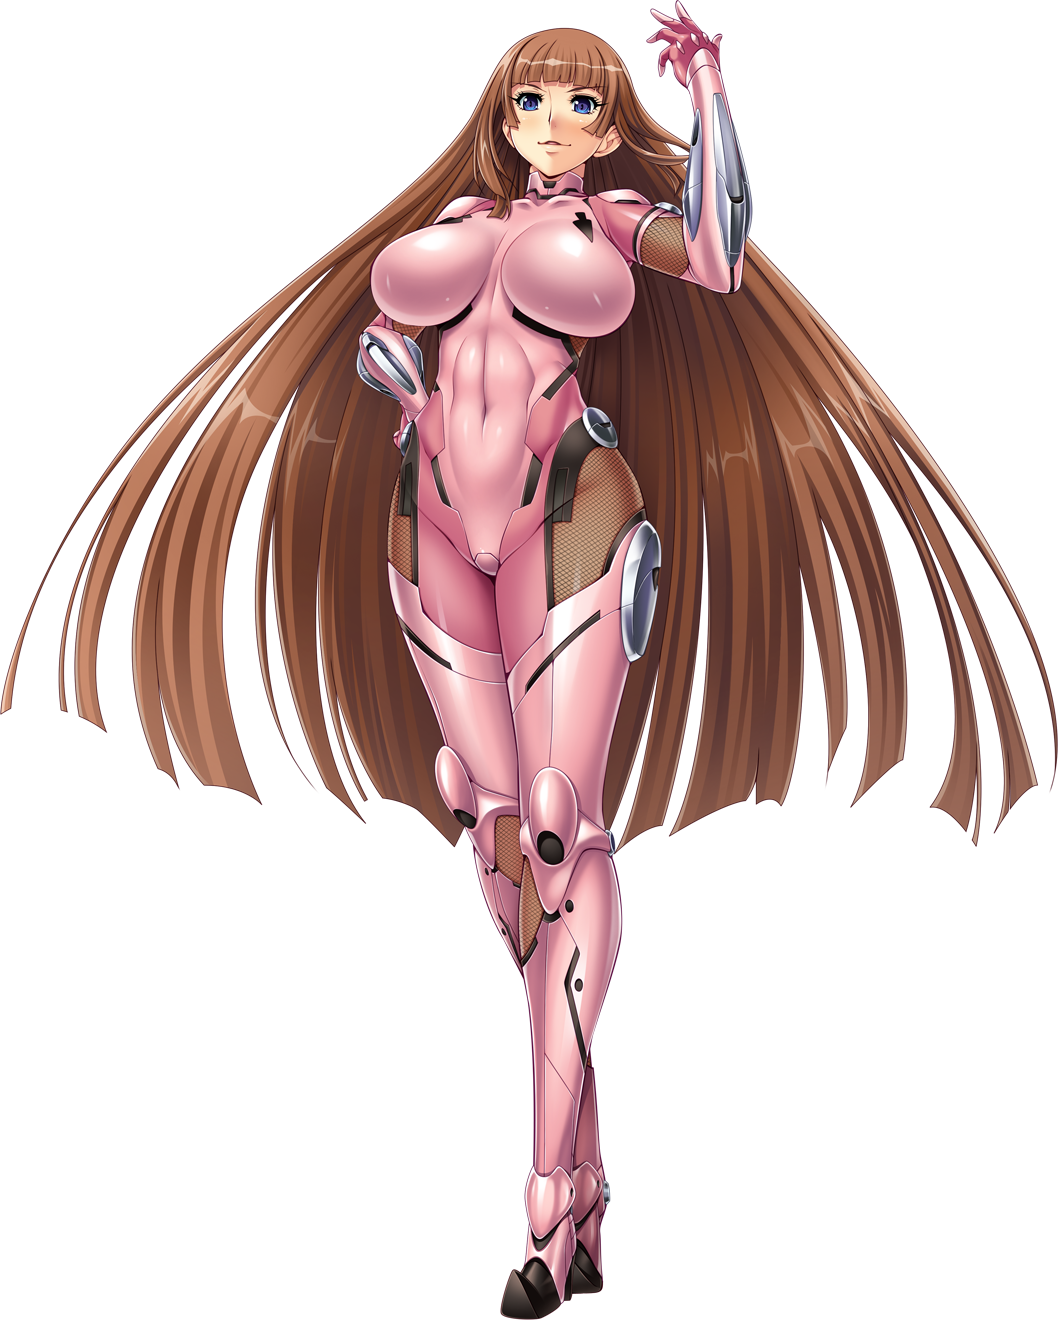 1girl aoi_nagisa_(metalder) arm_guards armor bangs blue_eyes bodysuit breasts brown_hair covered_navel fishnets full_body gloves hand_on_hip hand_up high_heels highres impossible_bodysuit impossible_clothes koukawa_asuka large_breasts lilith-soft long_hair looking_at_viewer official_art parted_lips pink_bodysuit shiny shiny_clothes shiny_hair shiny_skin skin_tight smile solo standing taimanin_(series) taimanin_asagi thigh-highs transparent_background very_long_hair